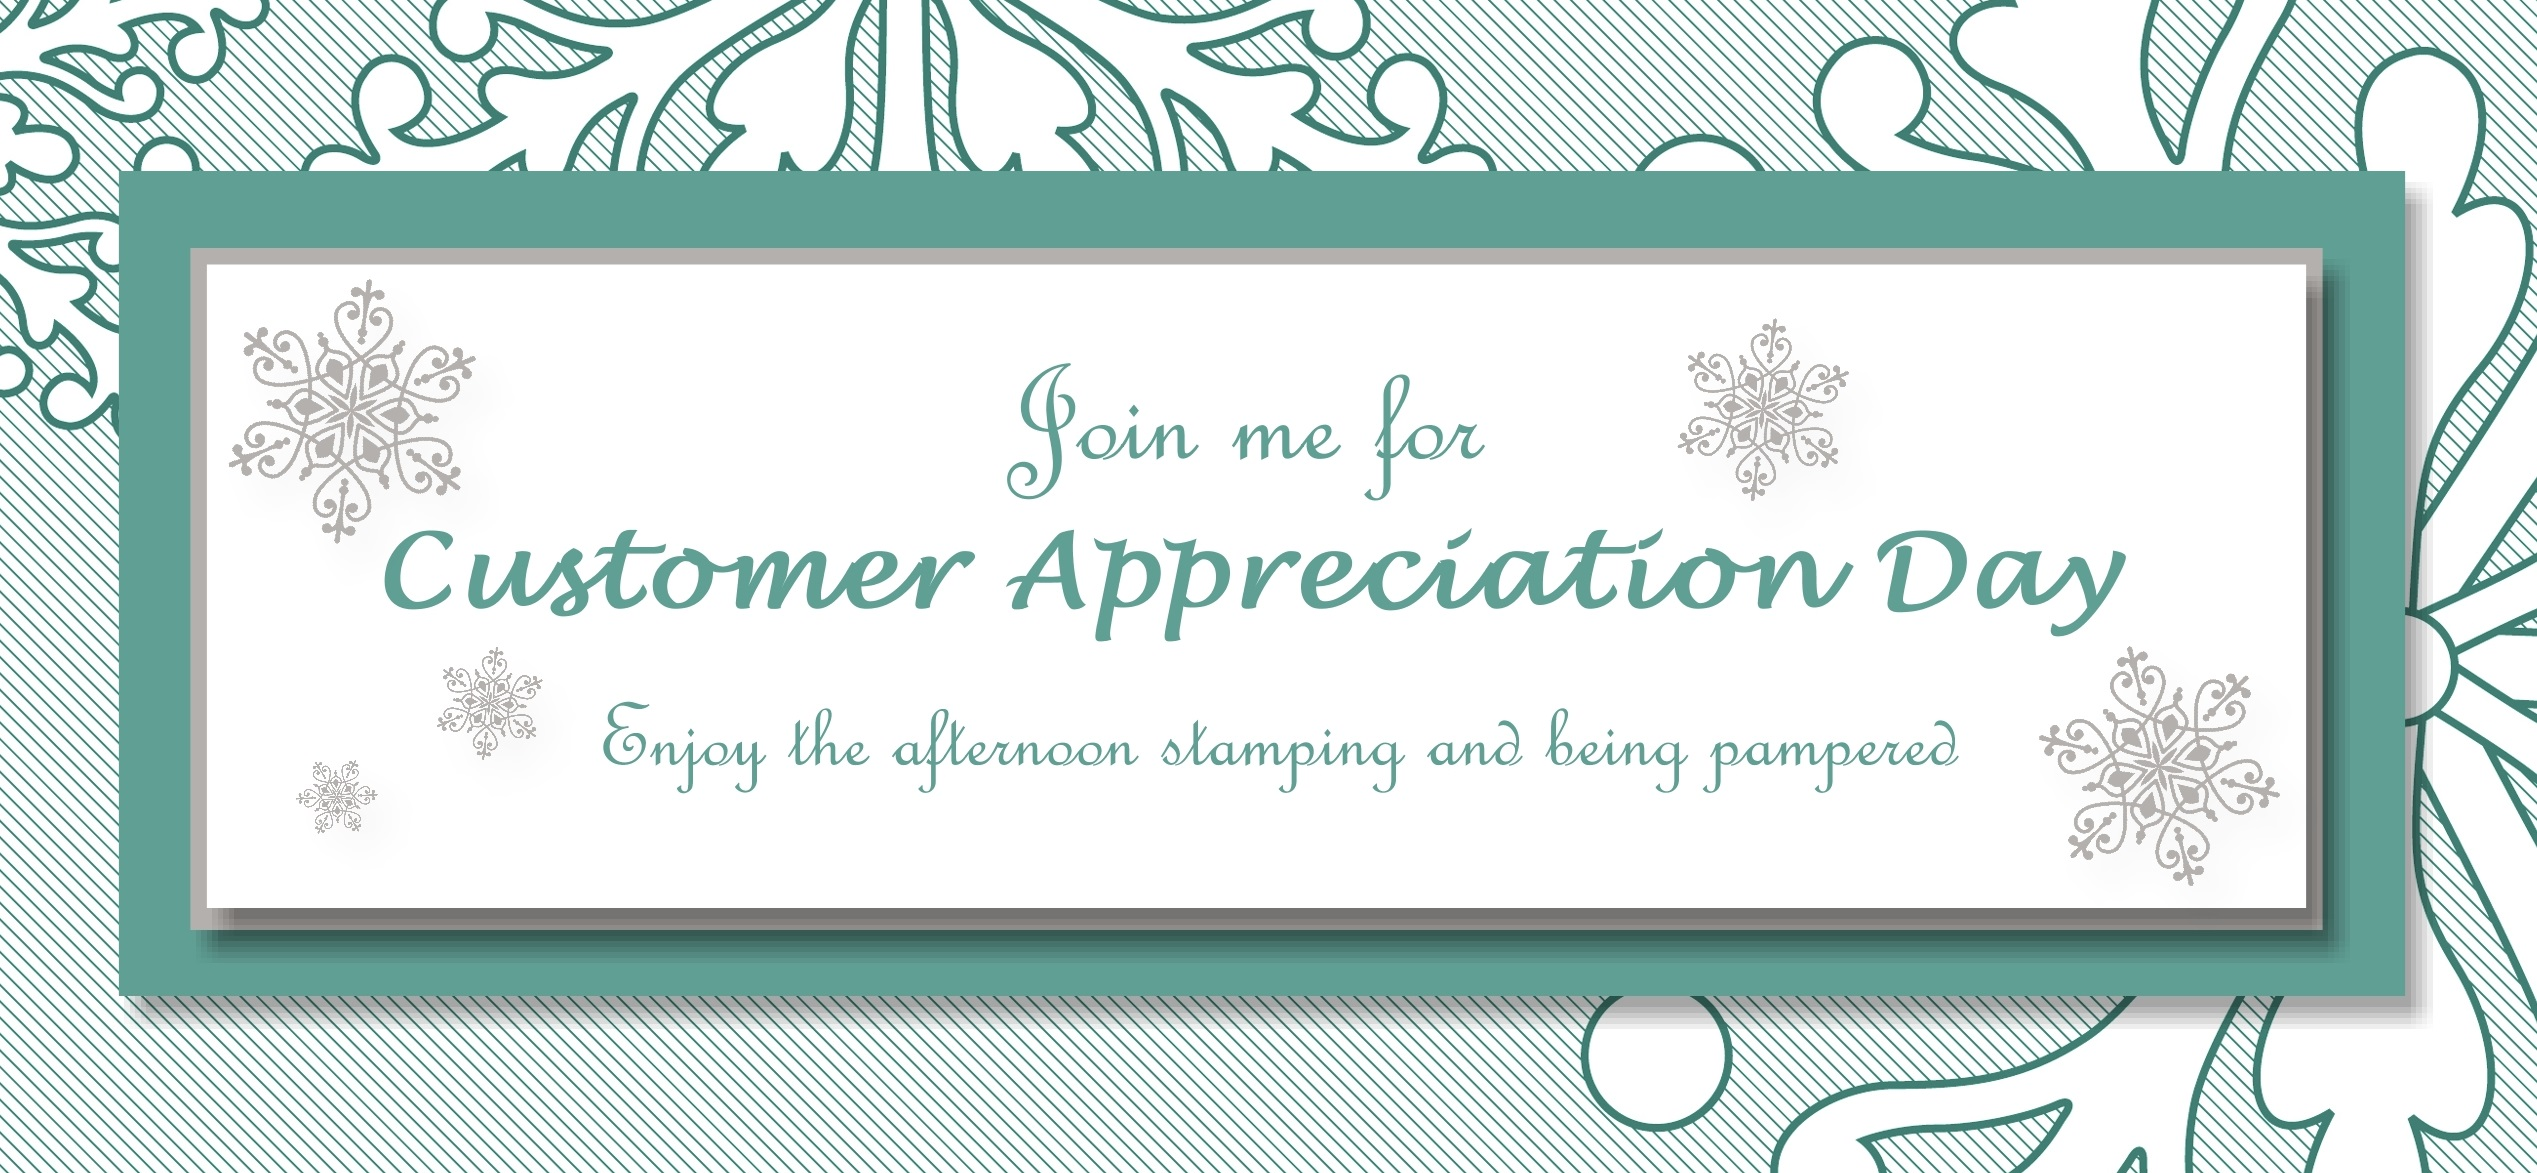 Customer Appreciation Pictures to pin on Pinterest